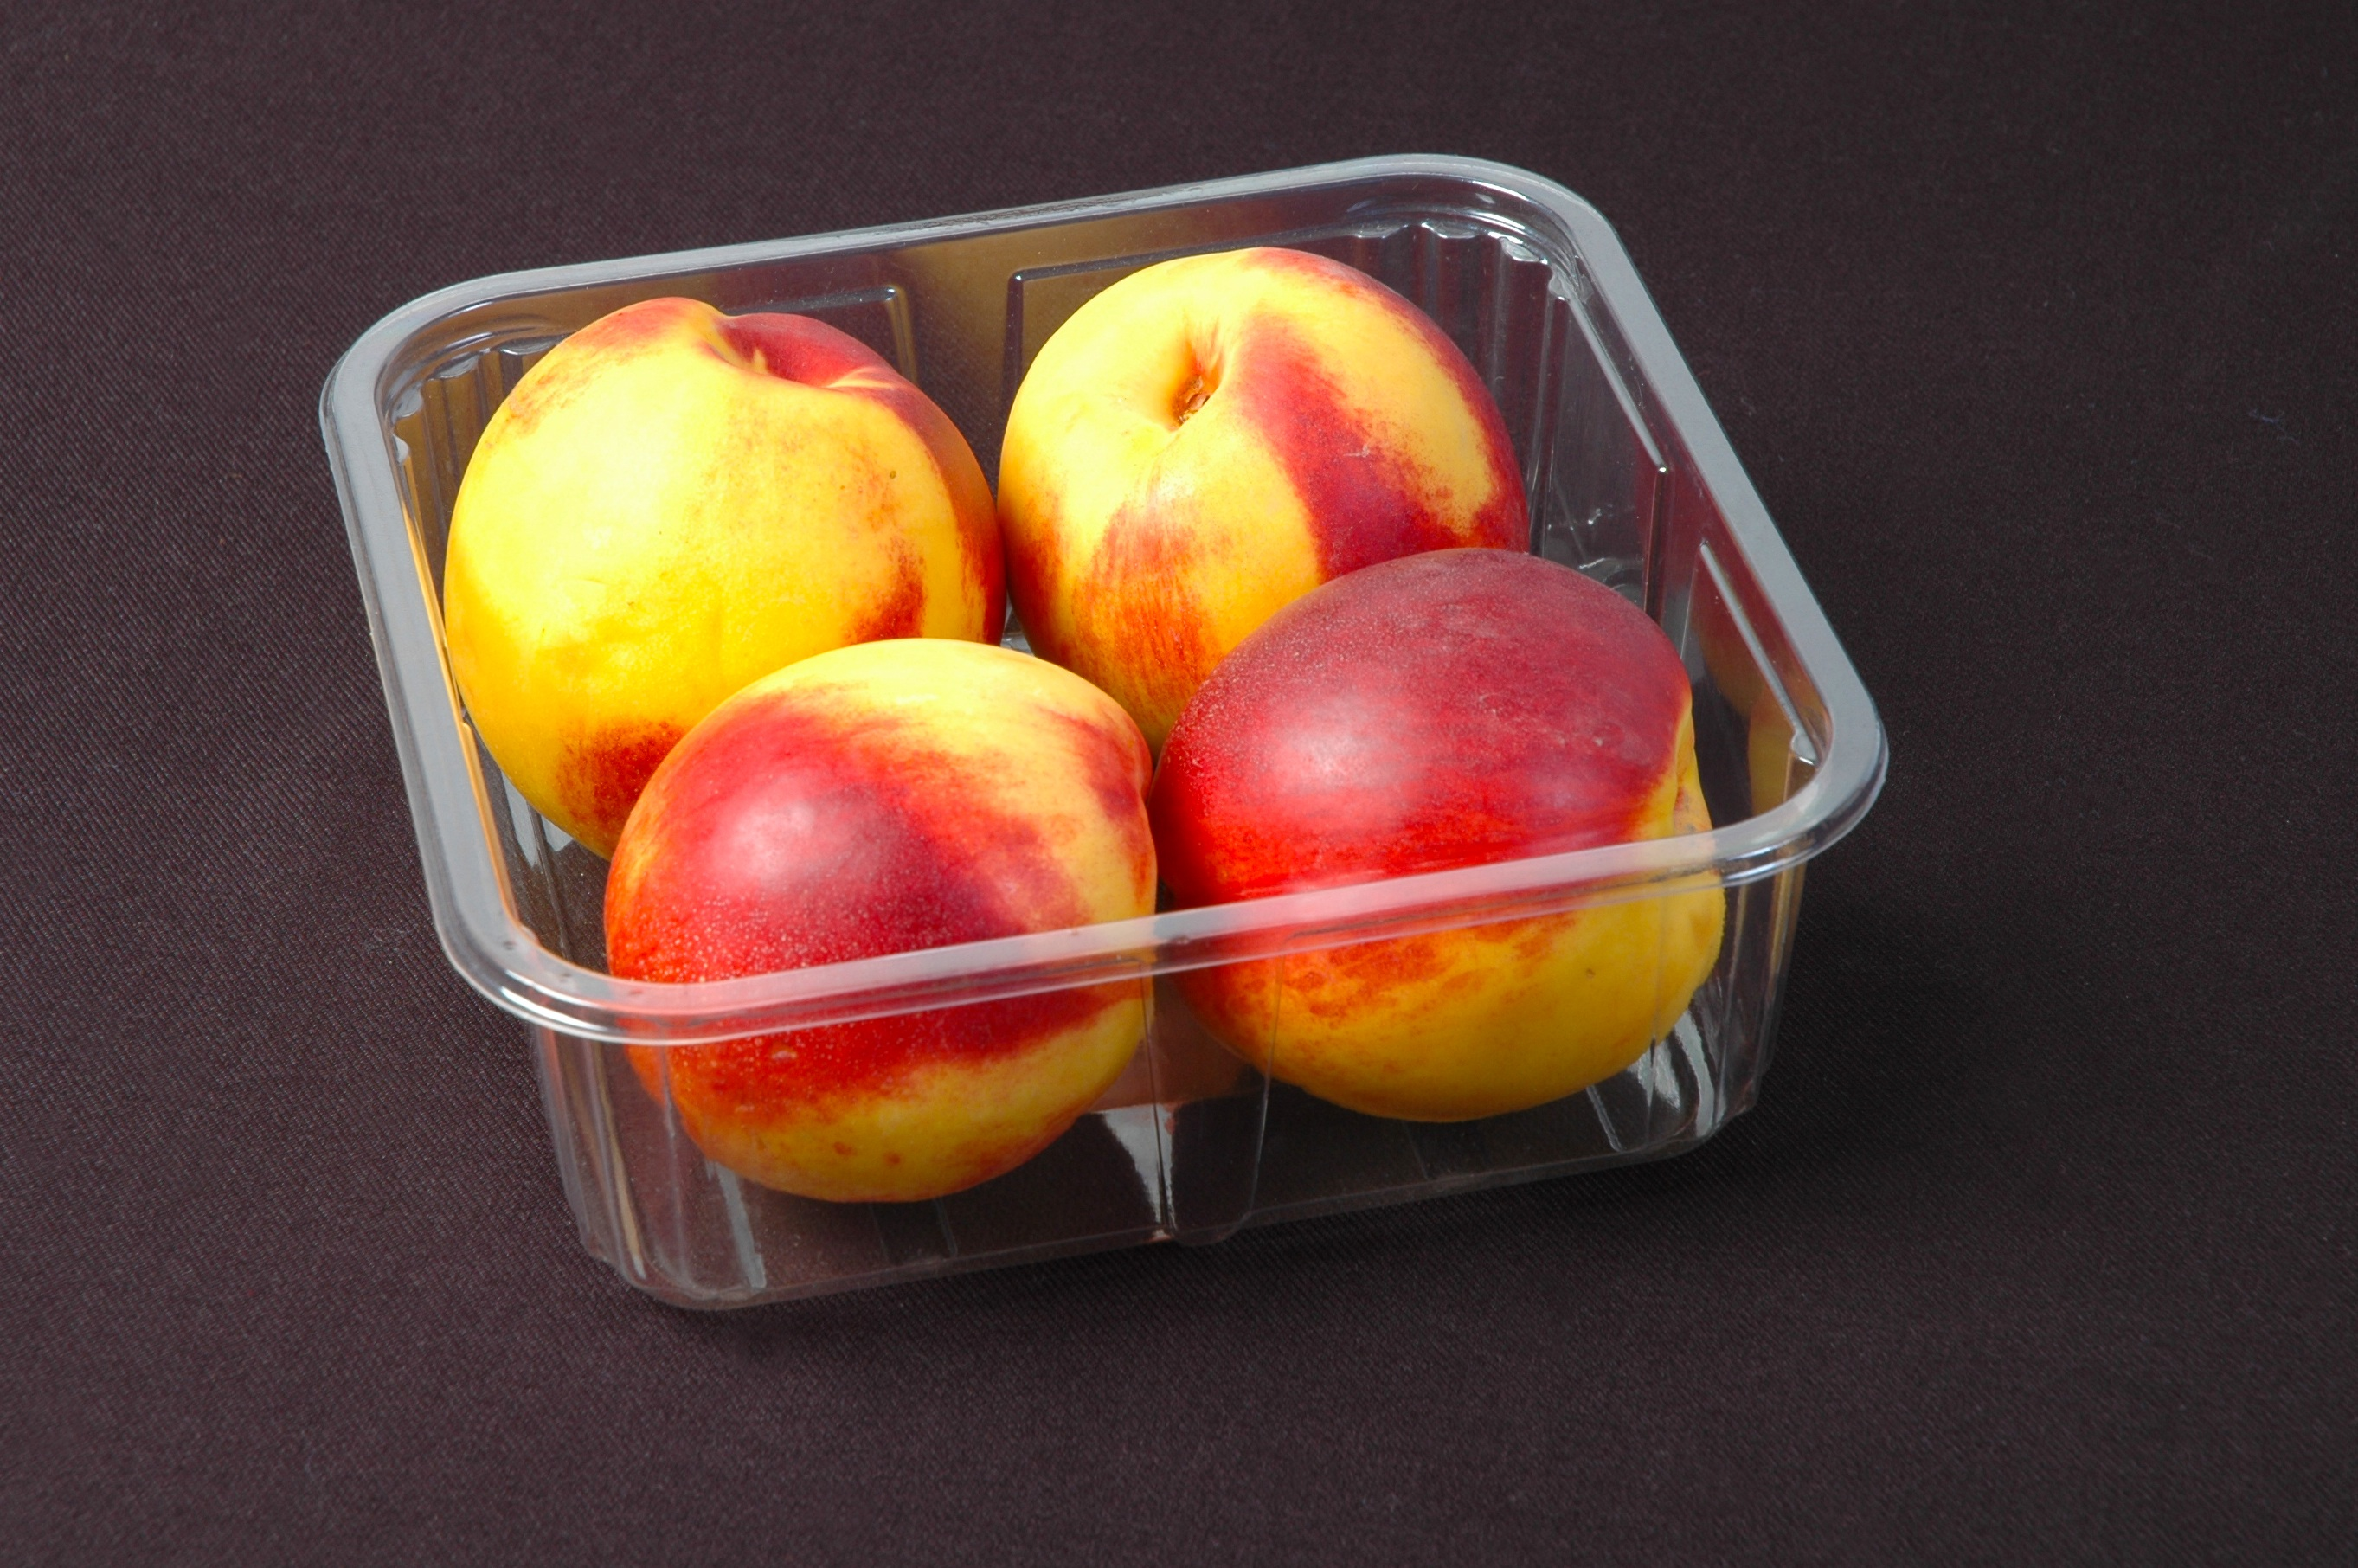 PACKAGING FEATURES AND FOOD WASTE